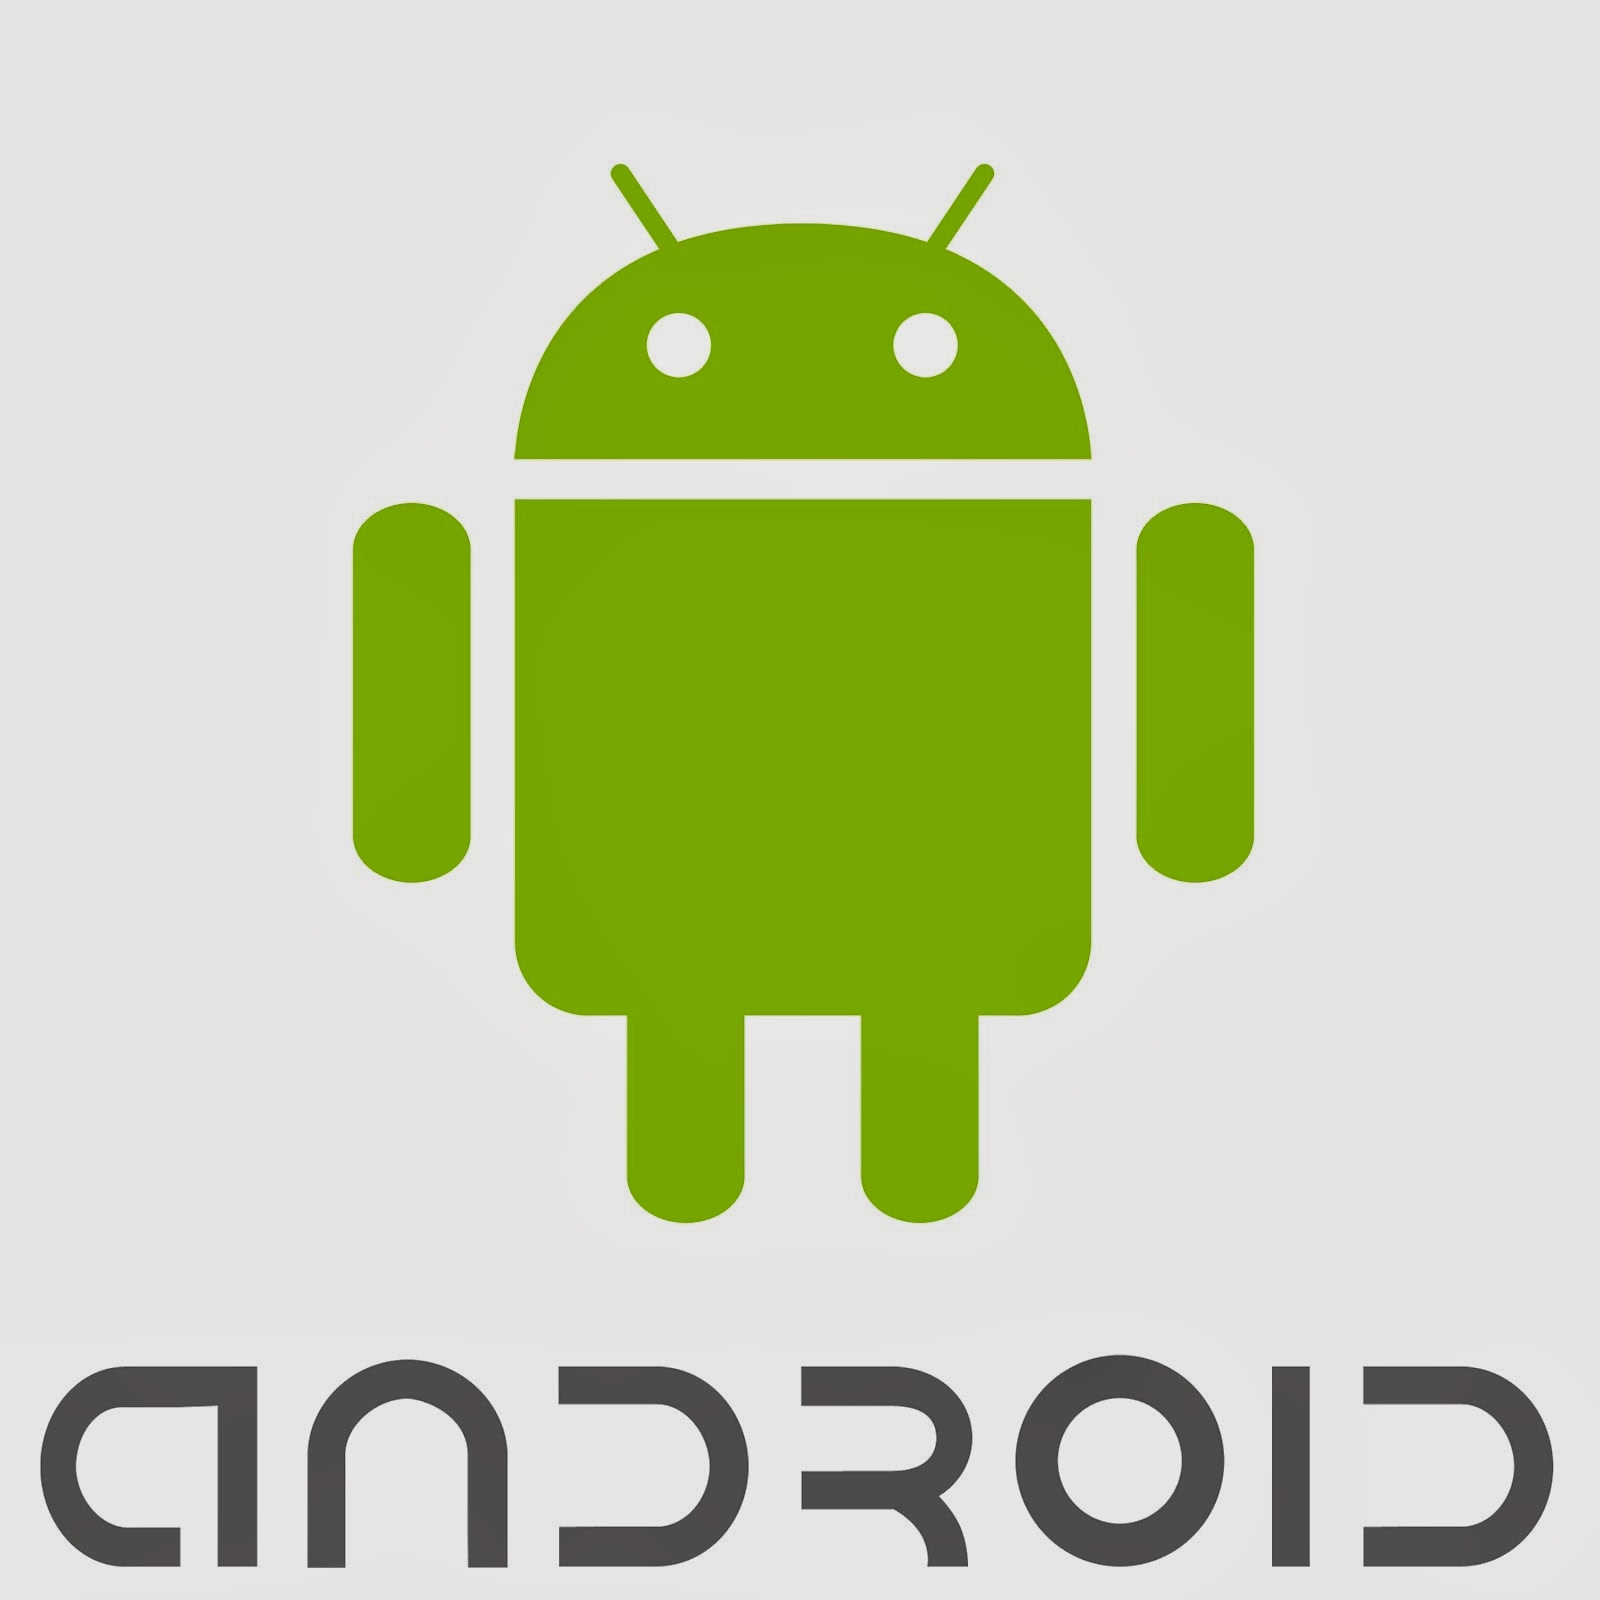 Google Operating System Android